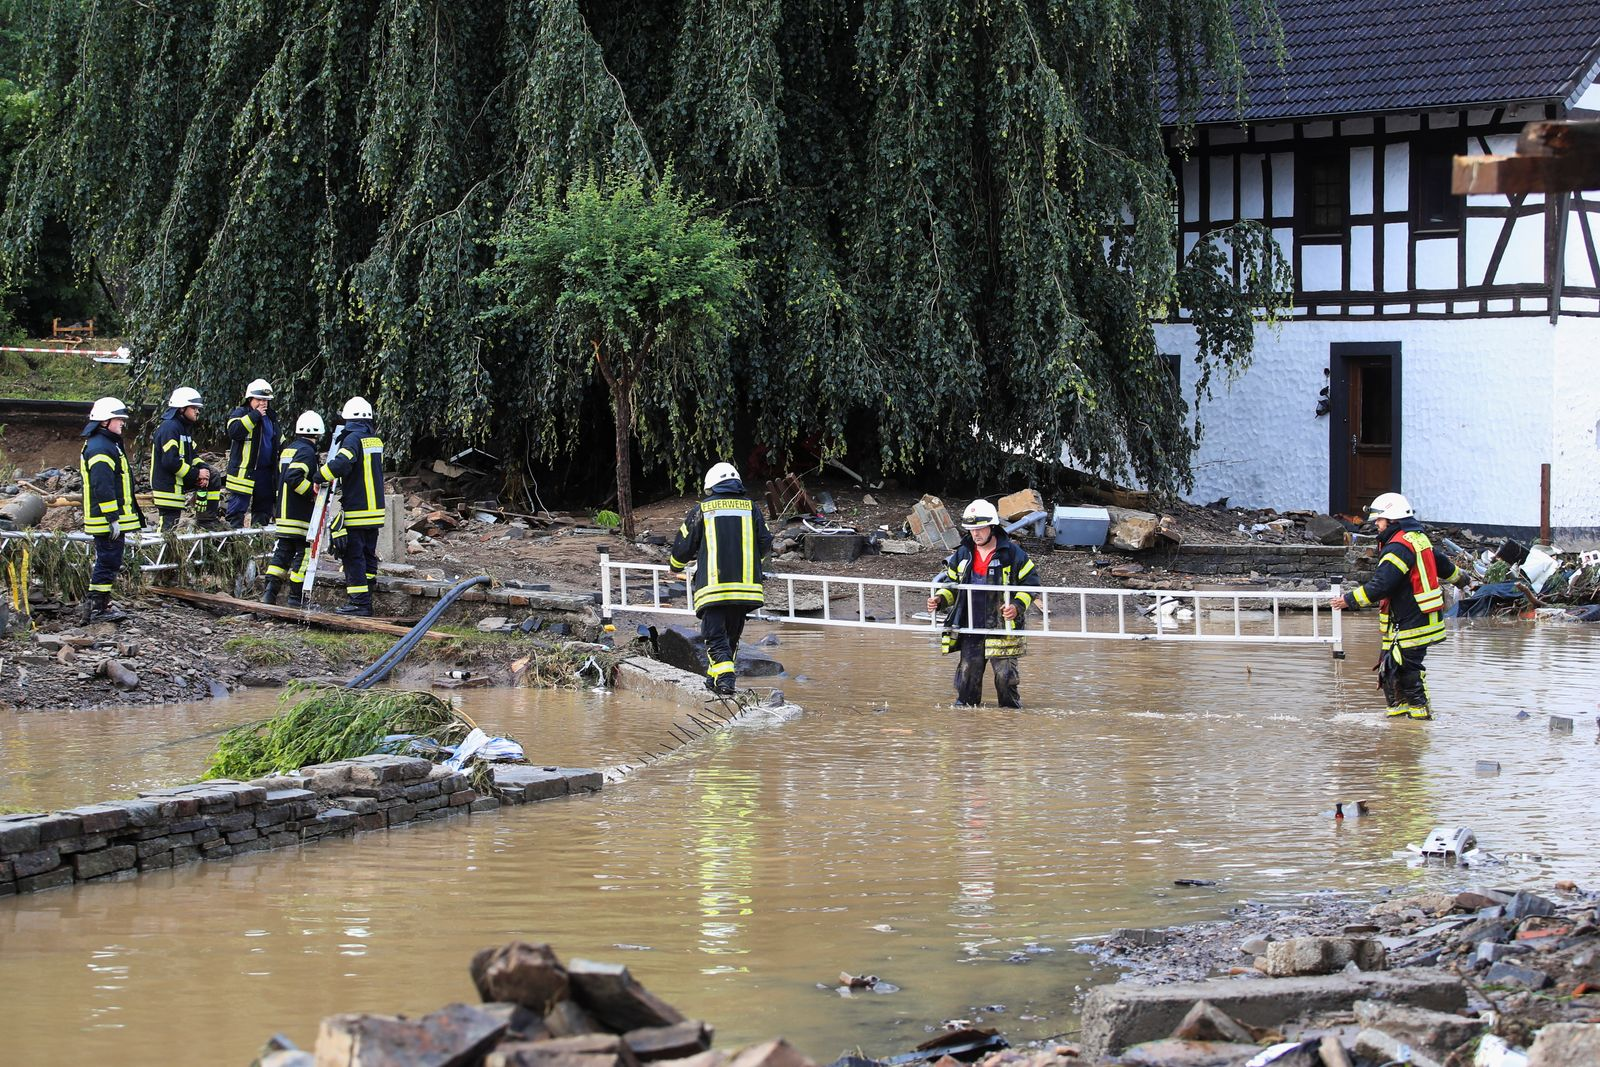 Firefighters work at a flood-affected area following heavy rainfalls in Schuld